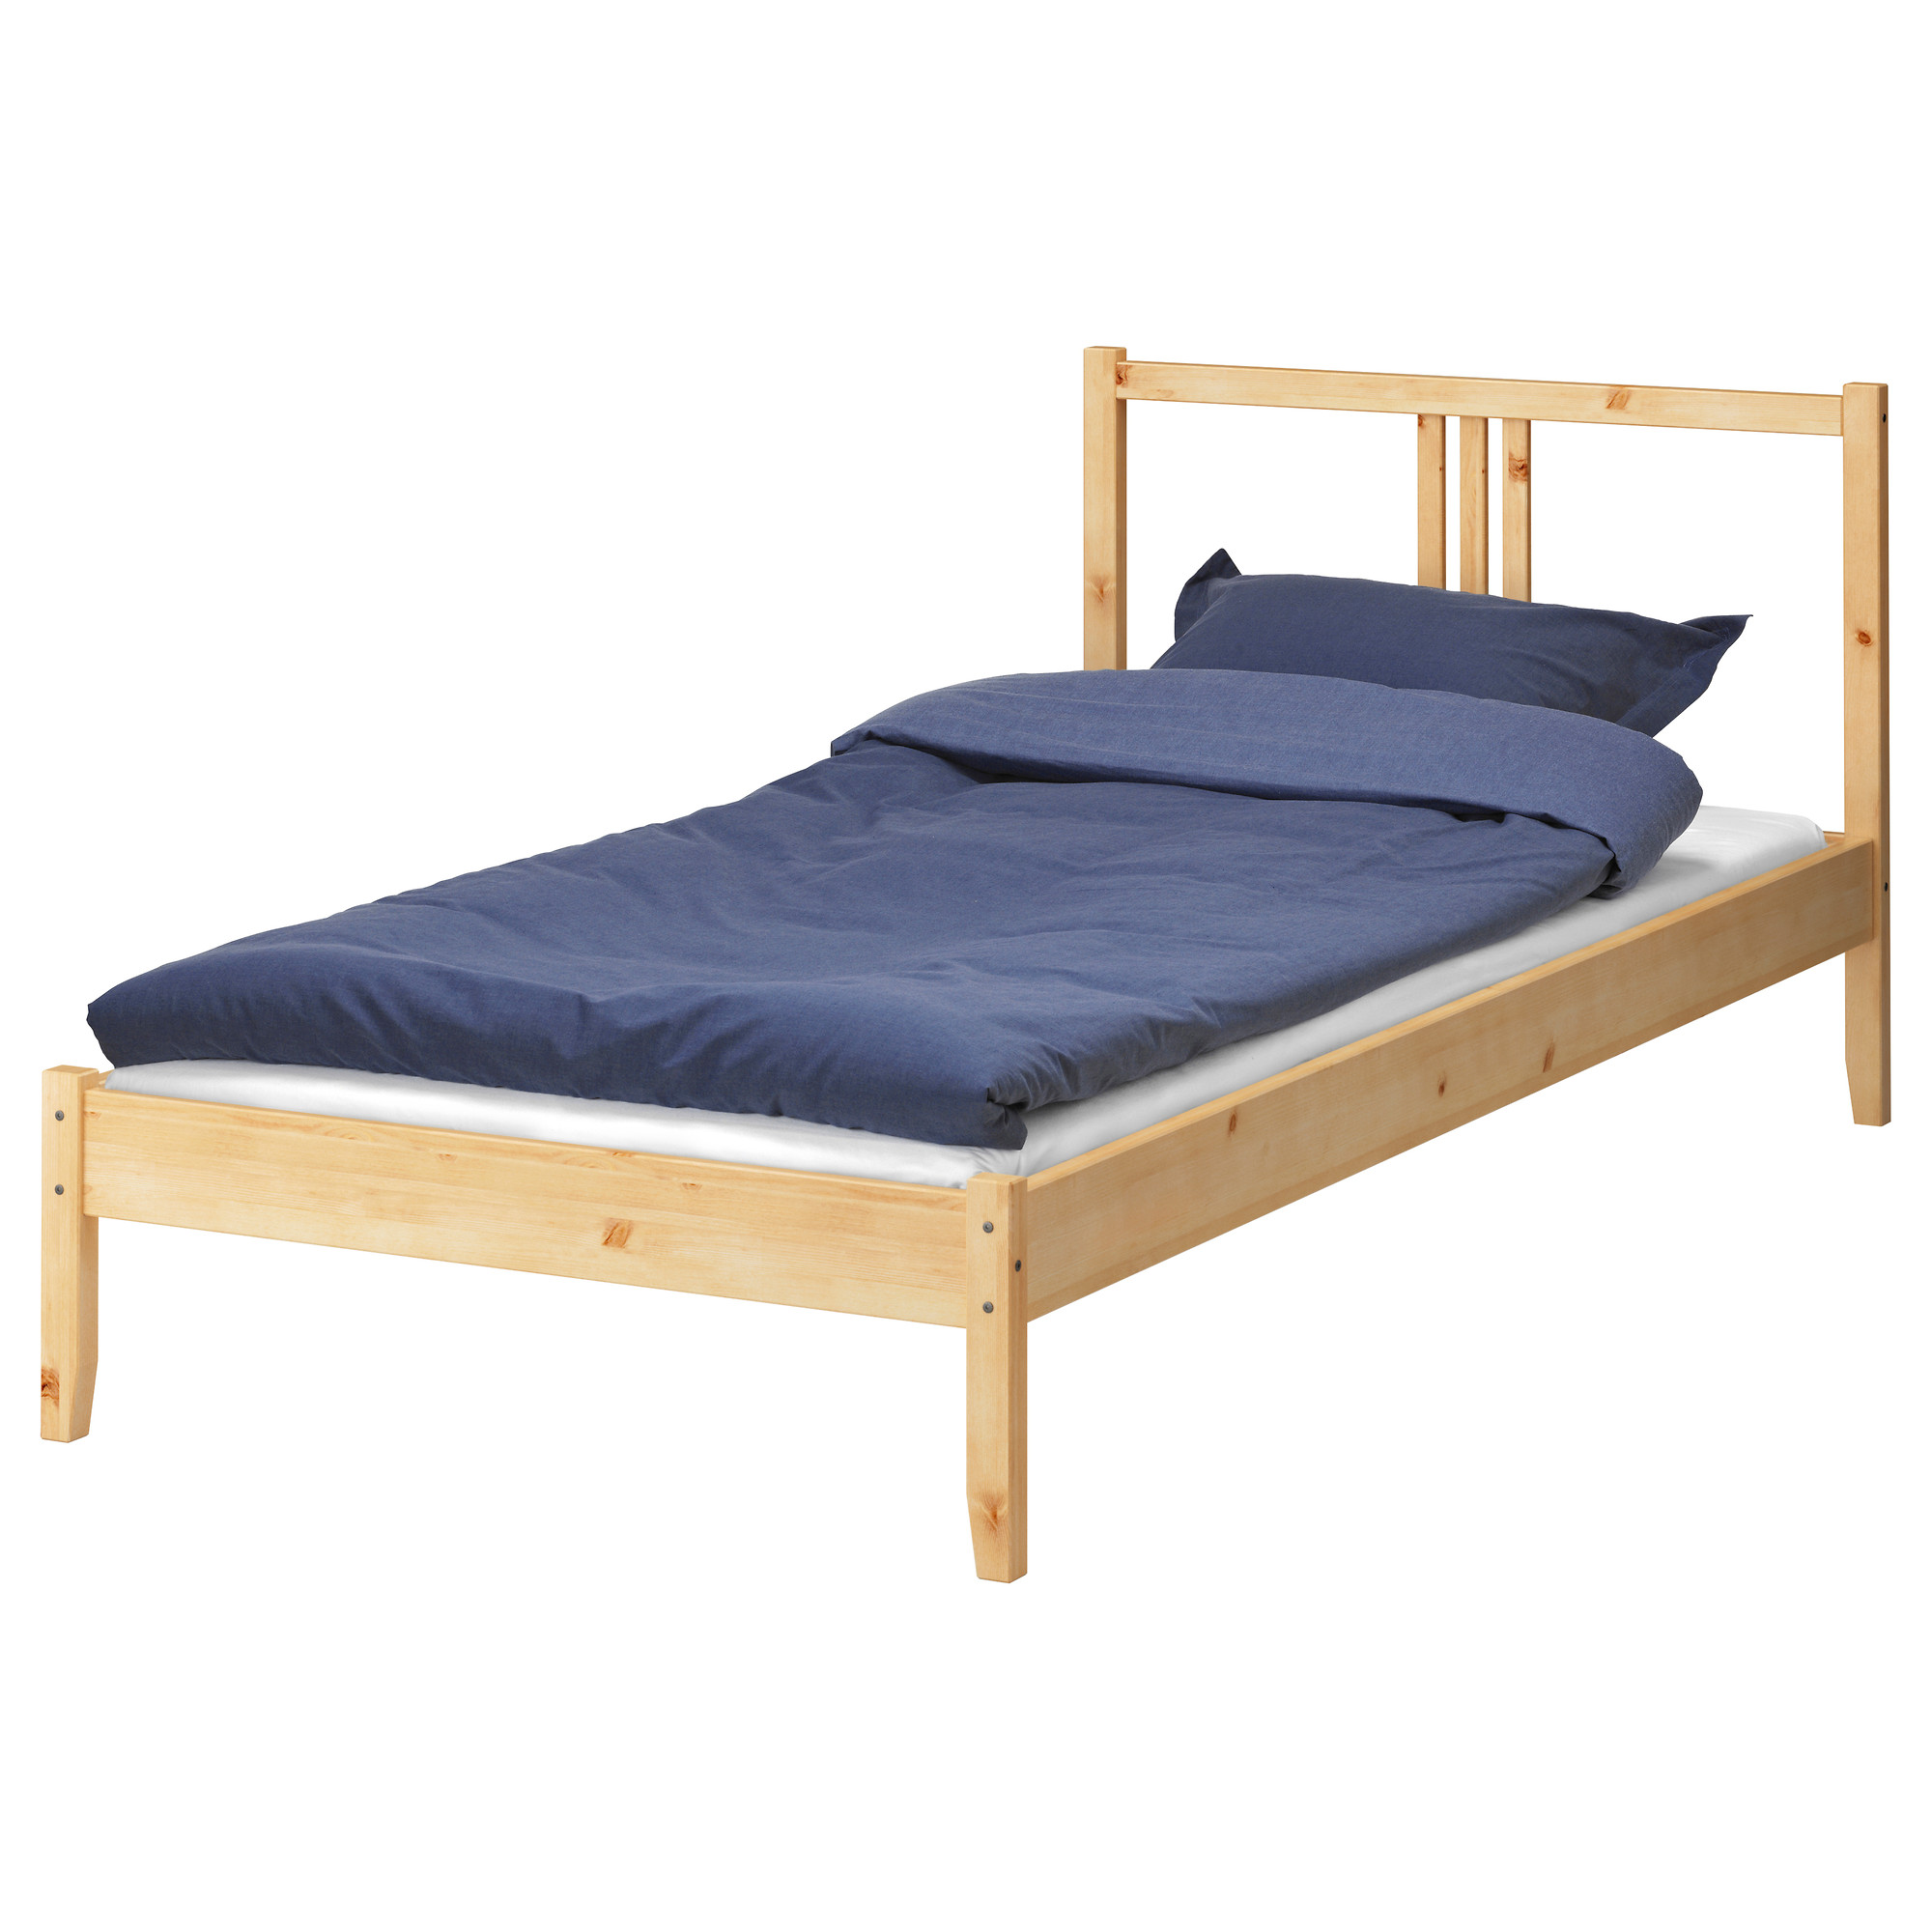 wooden twin xl bed frame ikea with blue mattress and pillow